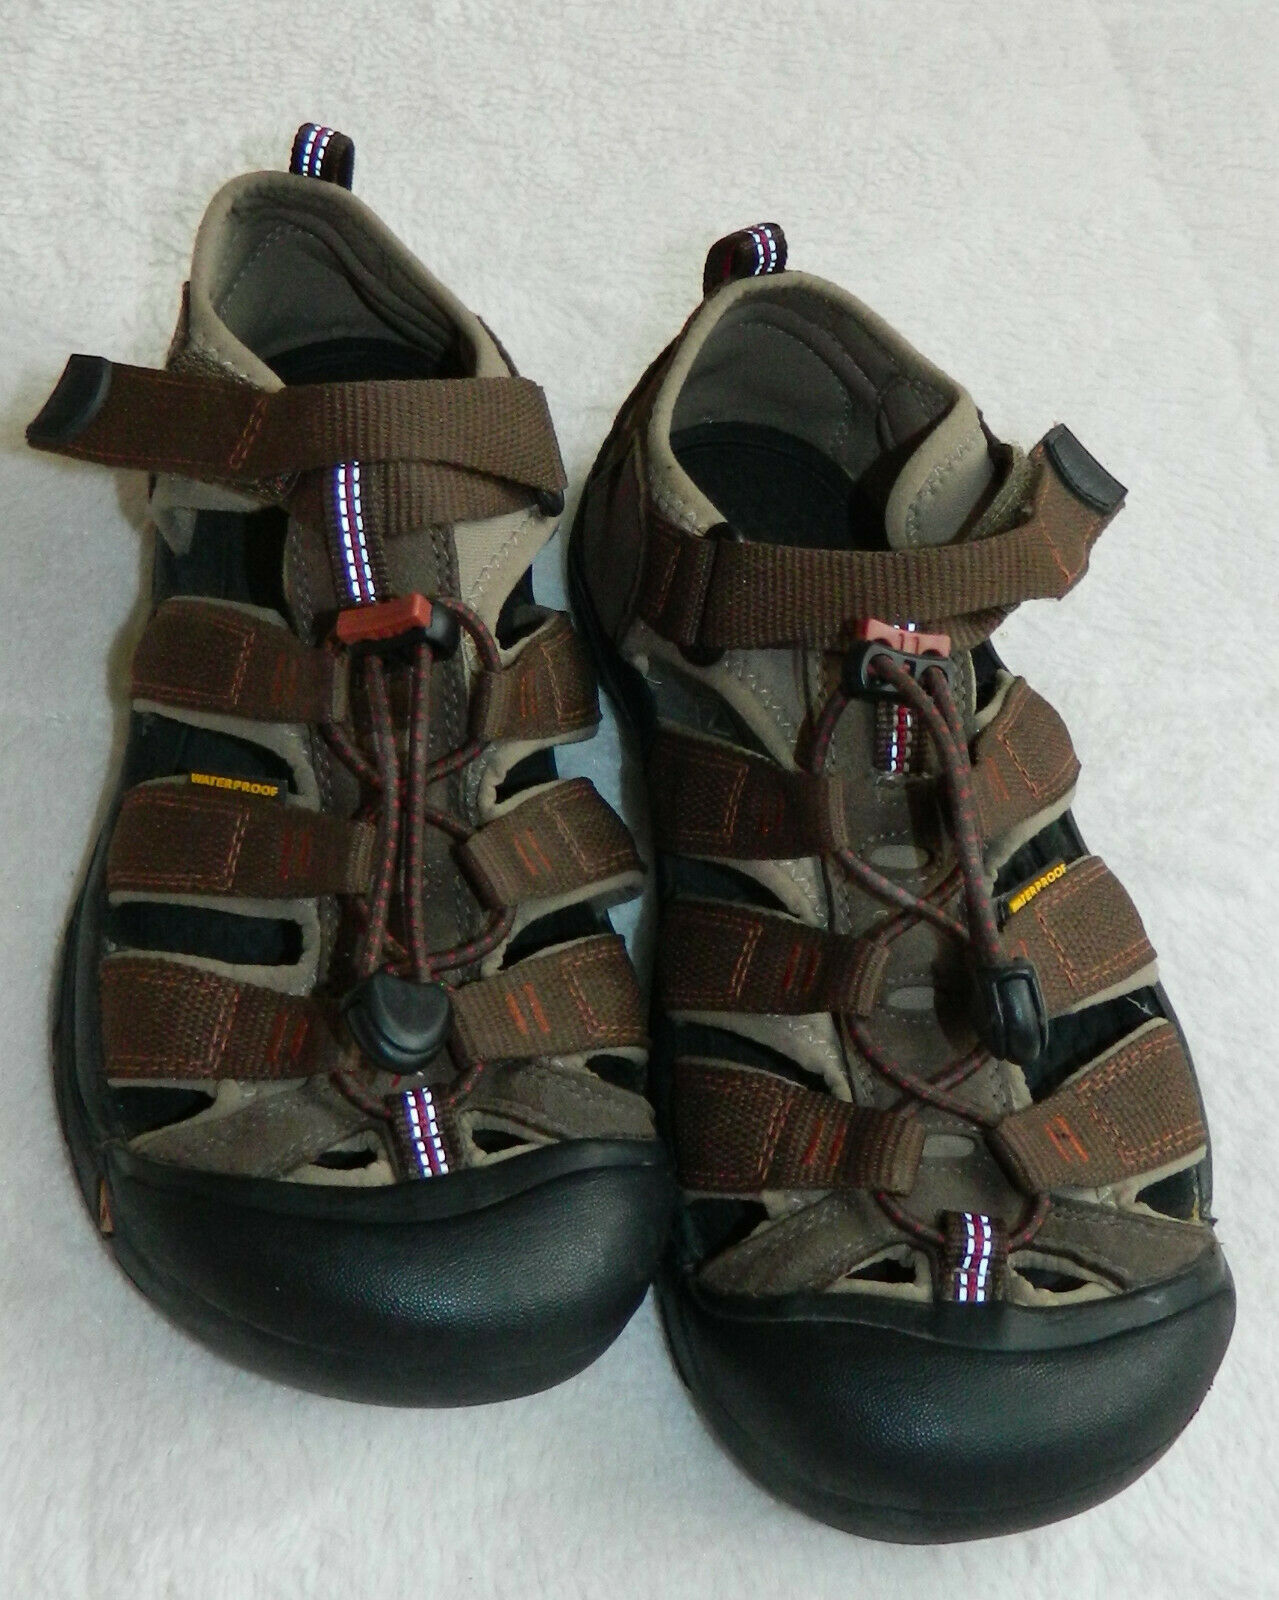 Lk Nw! Keen Newport Sandals Sport Waterproof Womens 6 Brown Hiking Outdoors